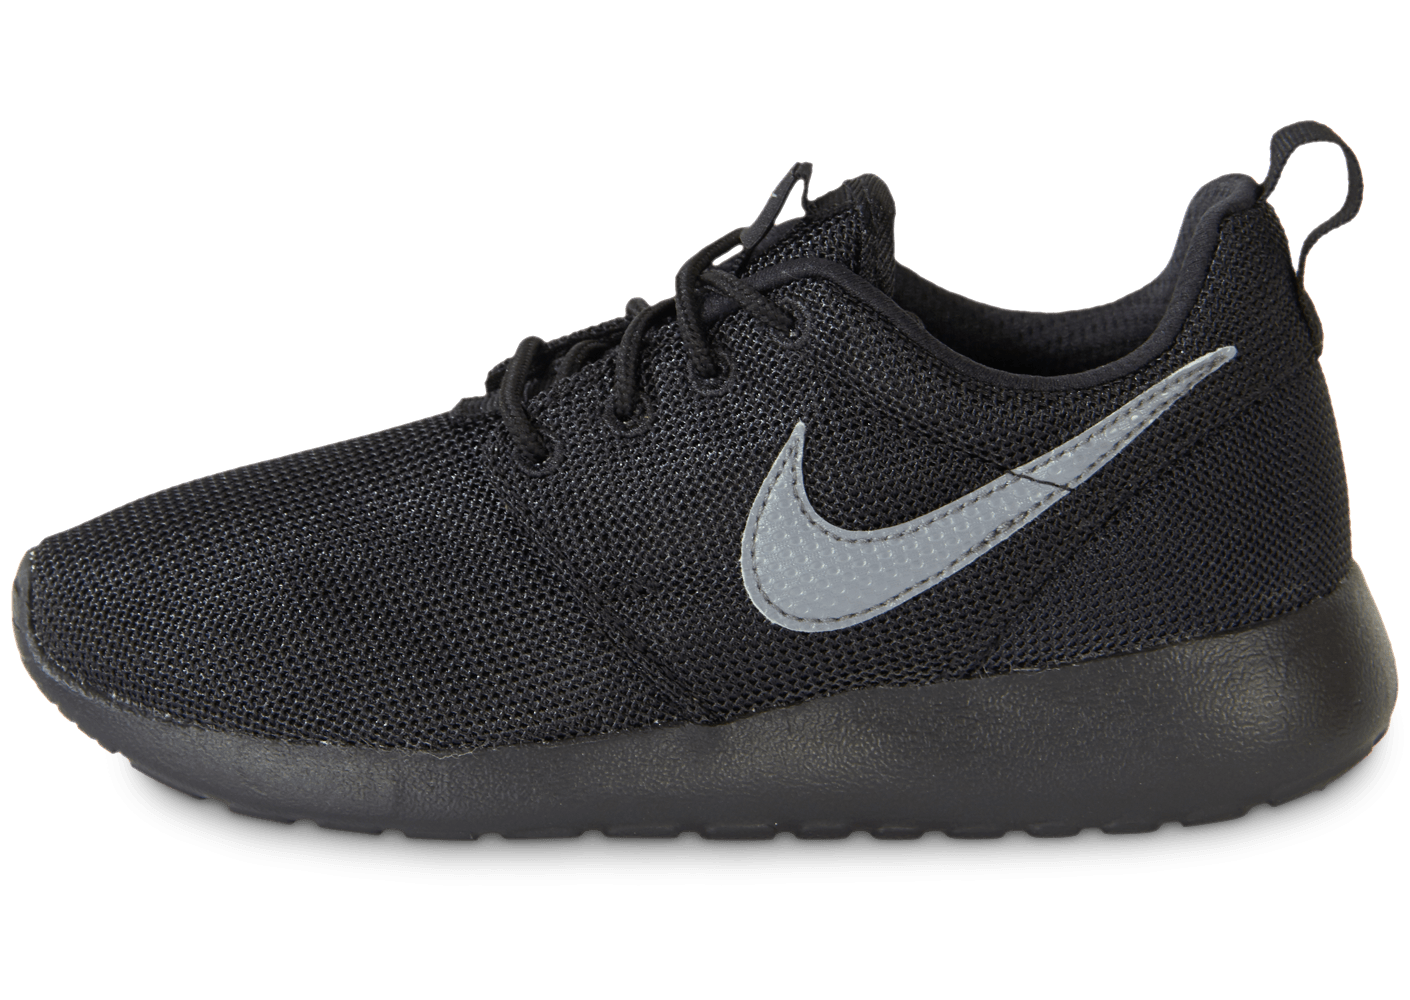 good out x a few days away wholesale price Nike Roshe One Enfant Noire - Chaussures Chaussures - Chausport